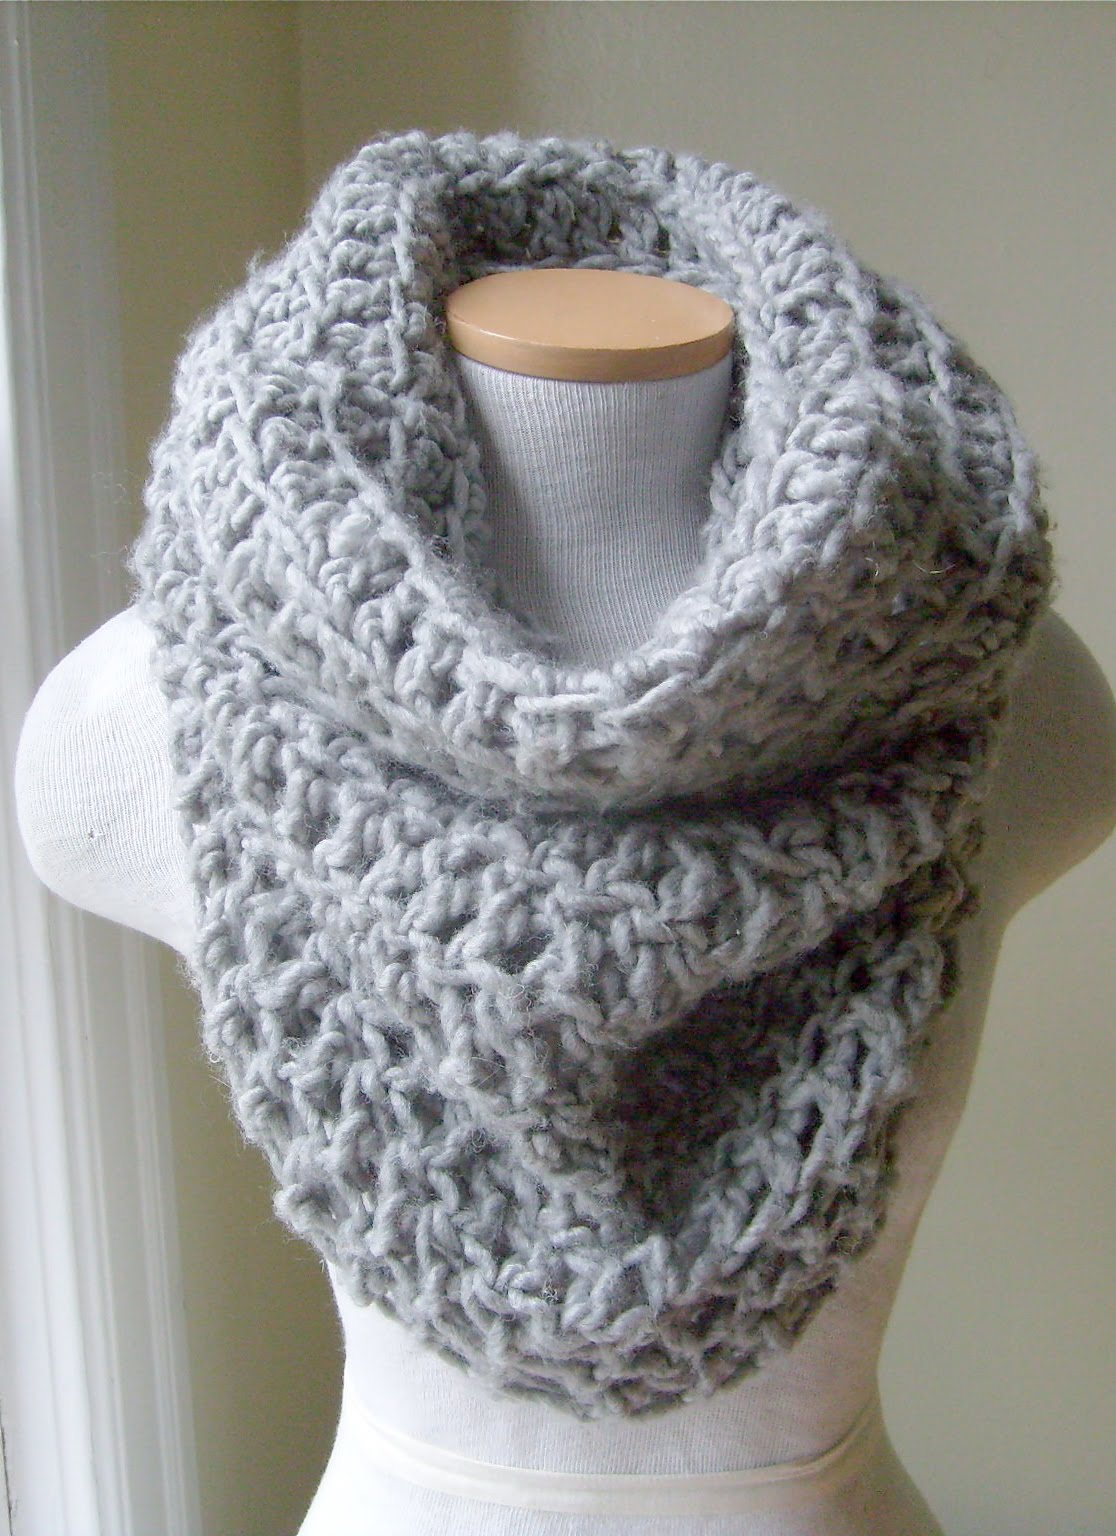 About Crochet : Queen Heron Creations: Crocheted Cowl Neckwarmers